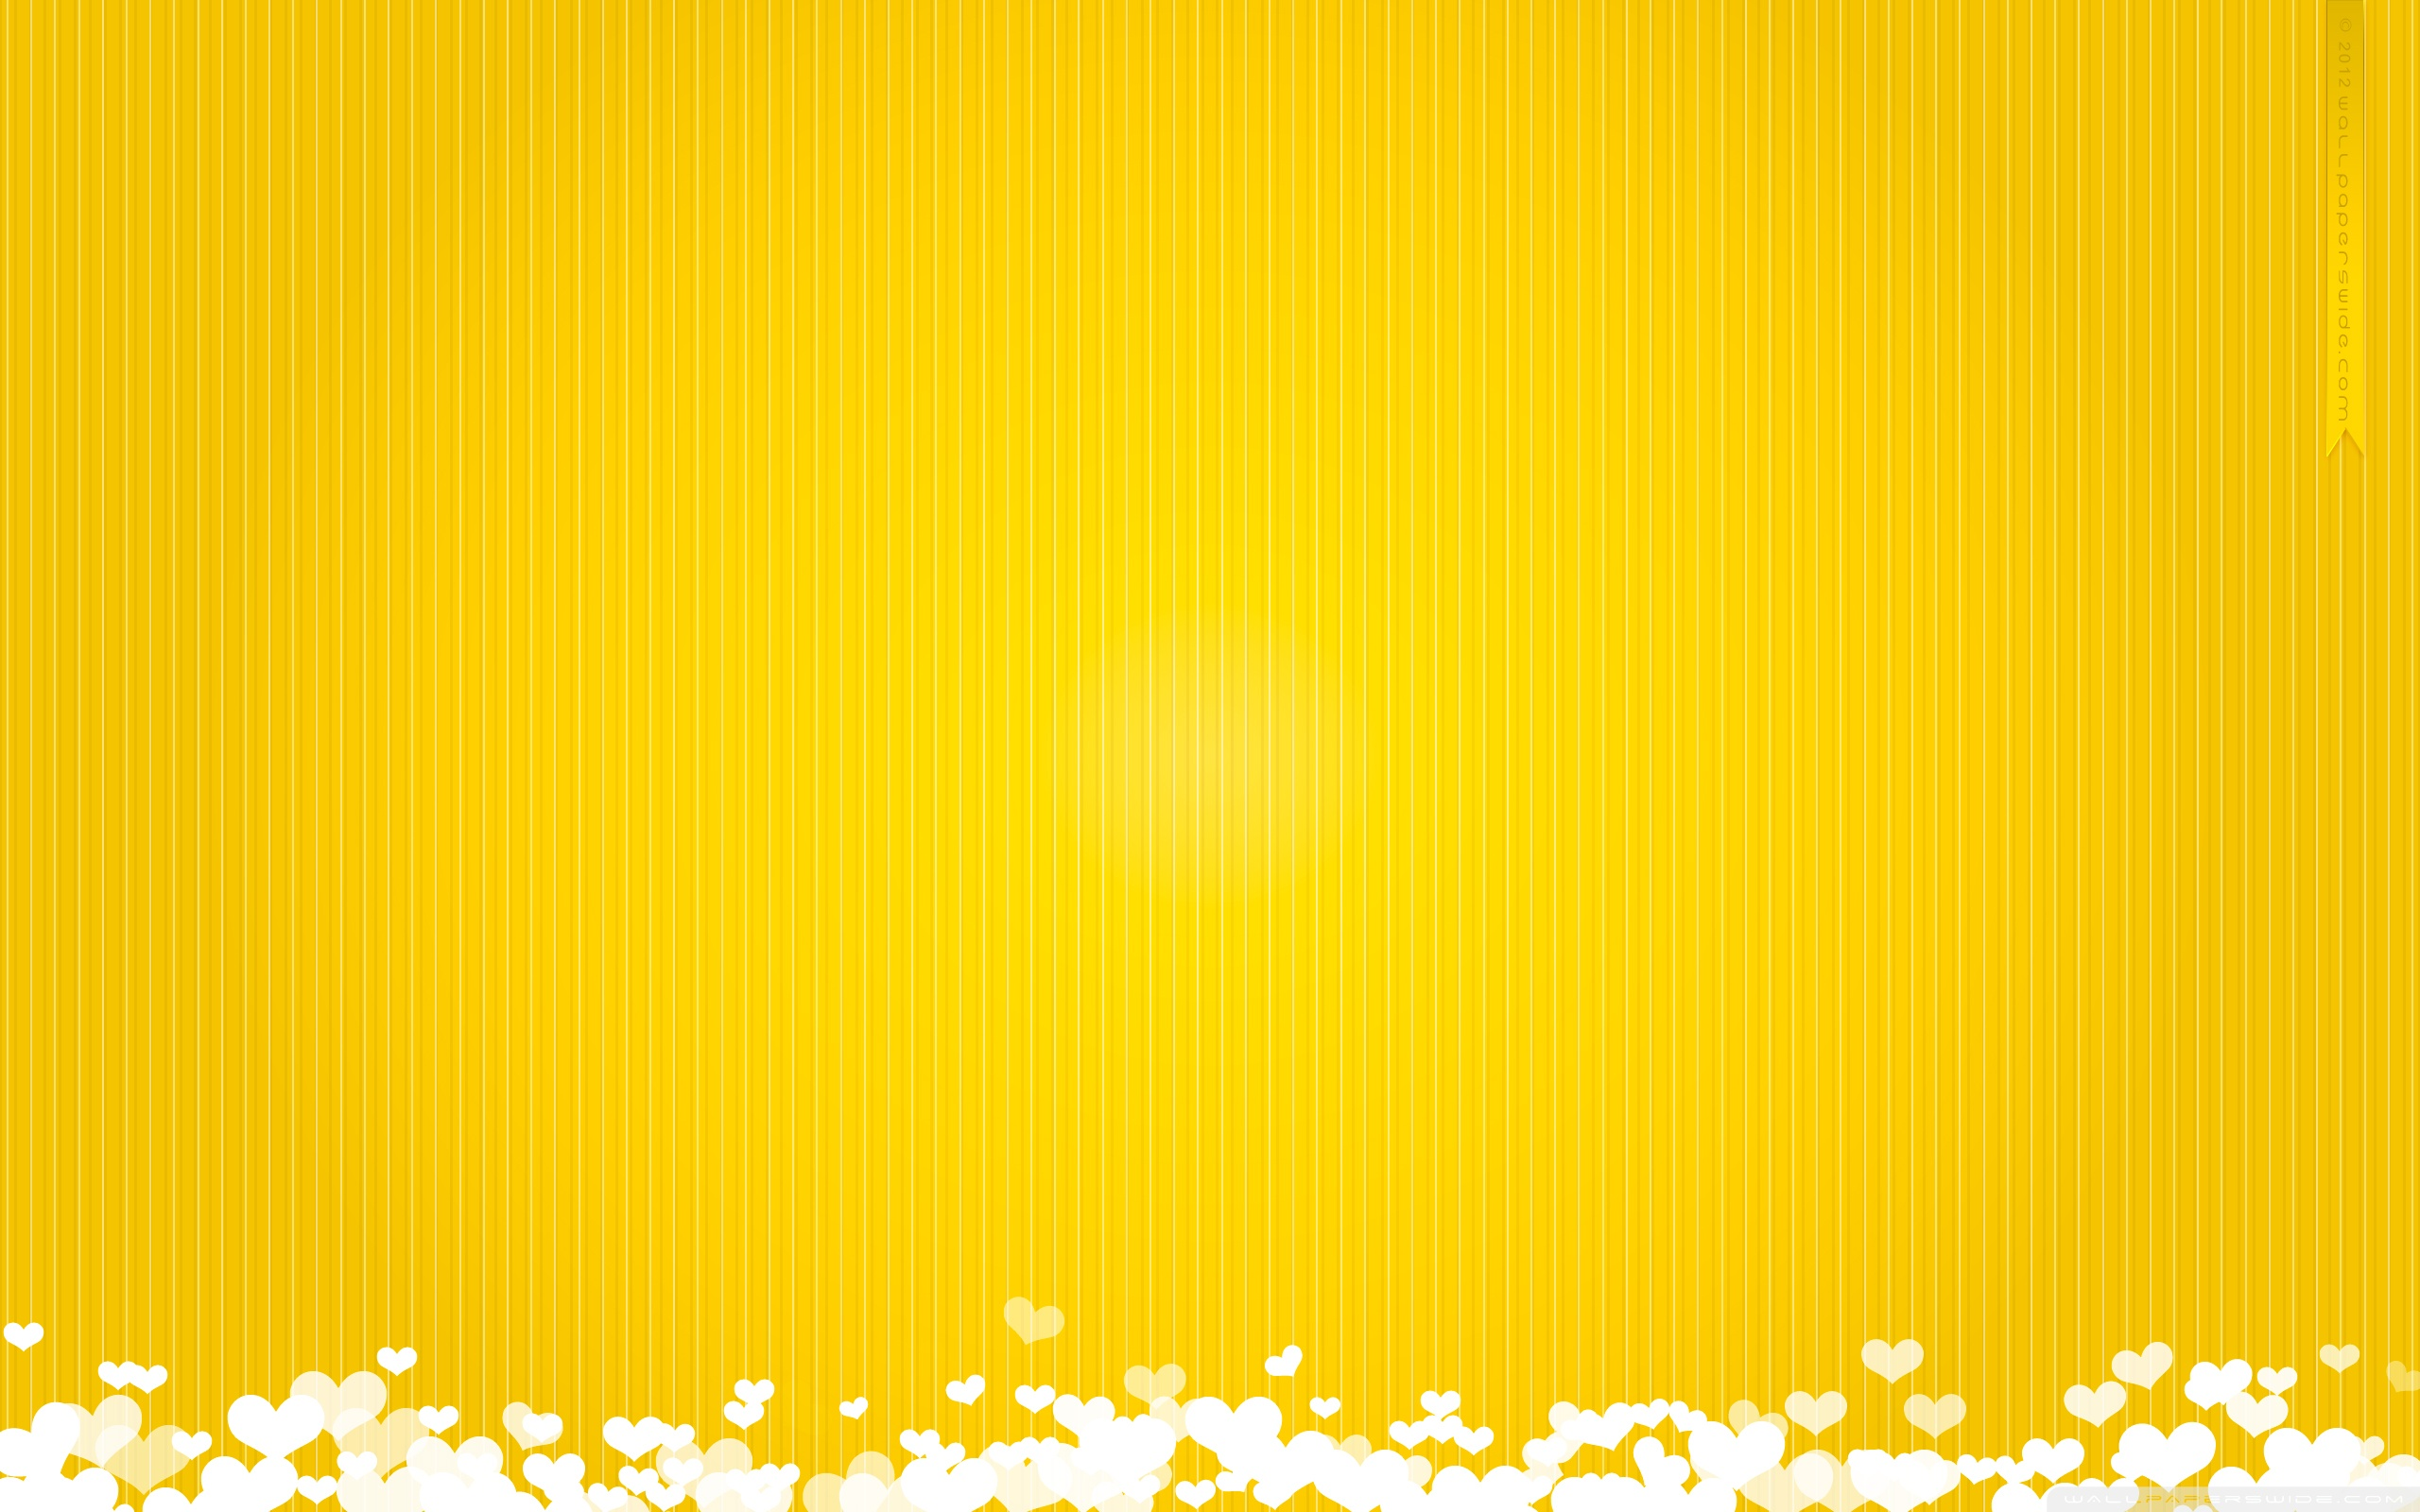 Free download Yellow Wallpapers High Resolution Wallpaper